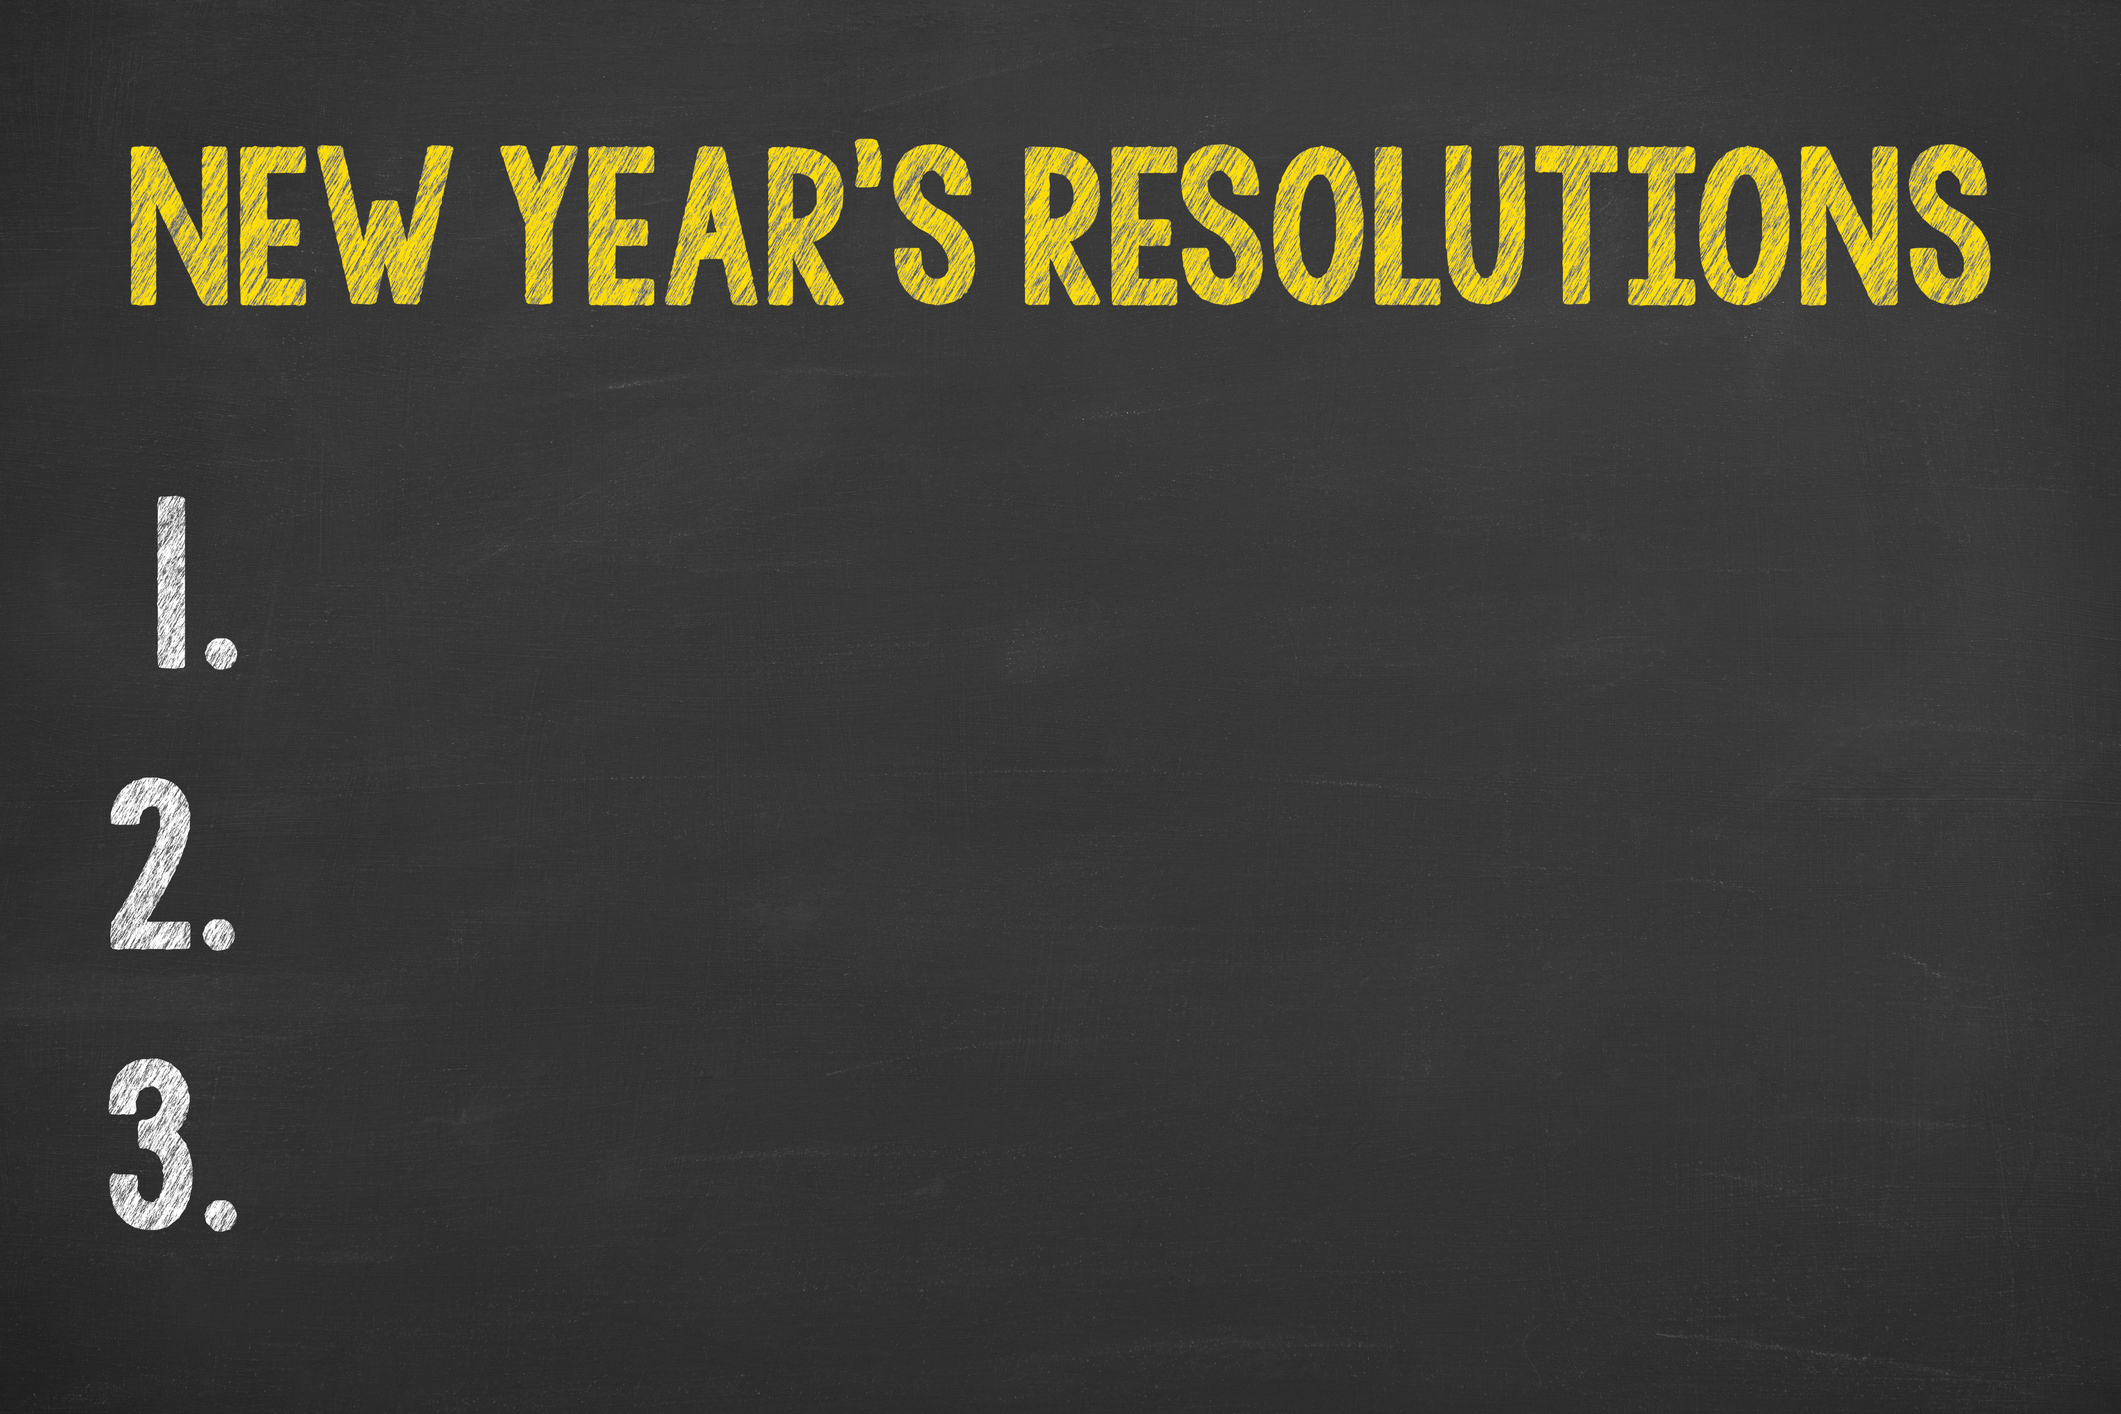 San Francisco Toyota - How to Set New Year's Resolutions ...